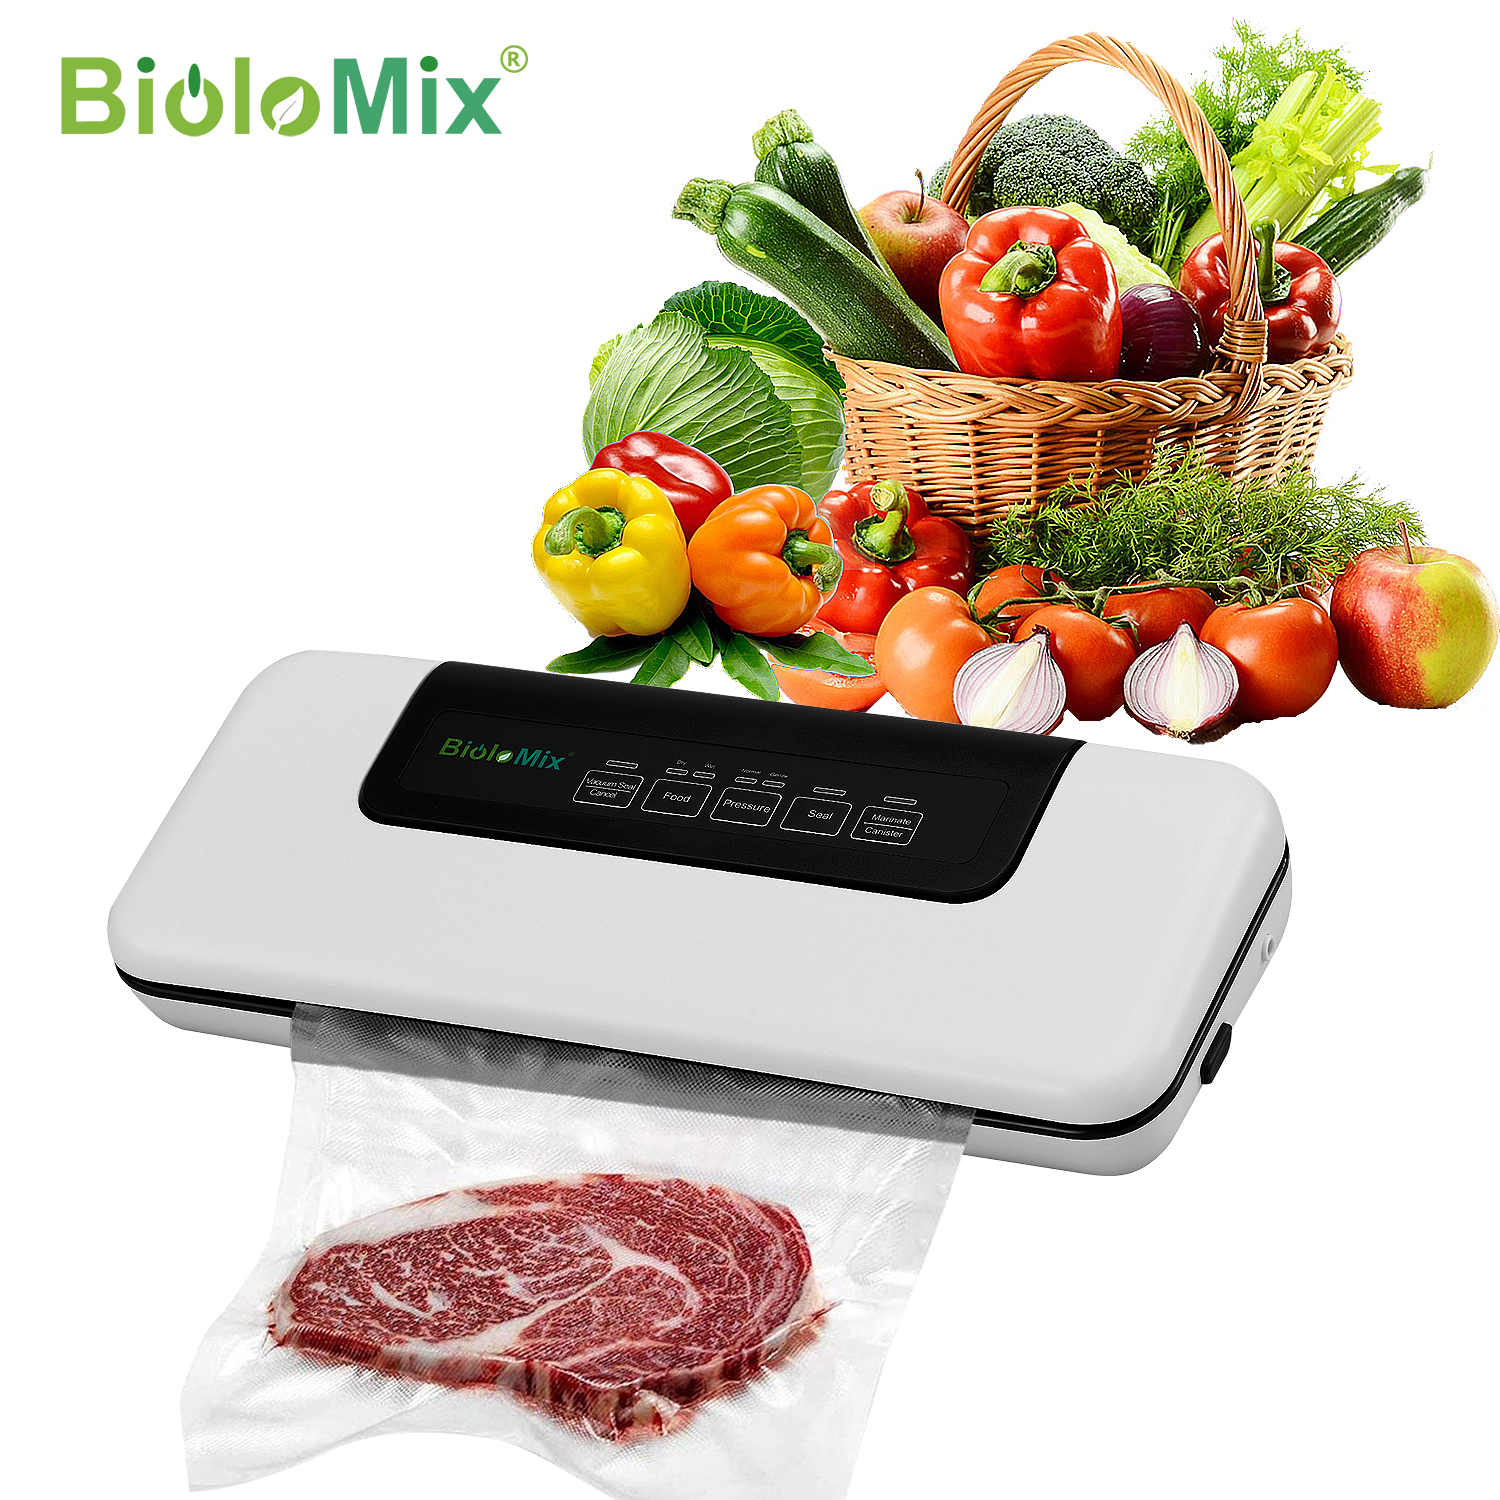 Biolomix Vacuum Sealer, Automatic Food Saver Machine for Food Preservation, Dry & Wet Mode for Sous Vide, 10 Vacuum Sealing Bags